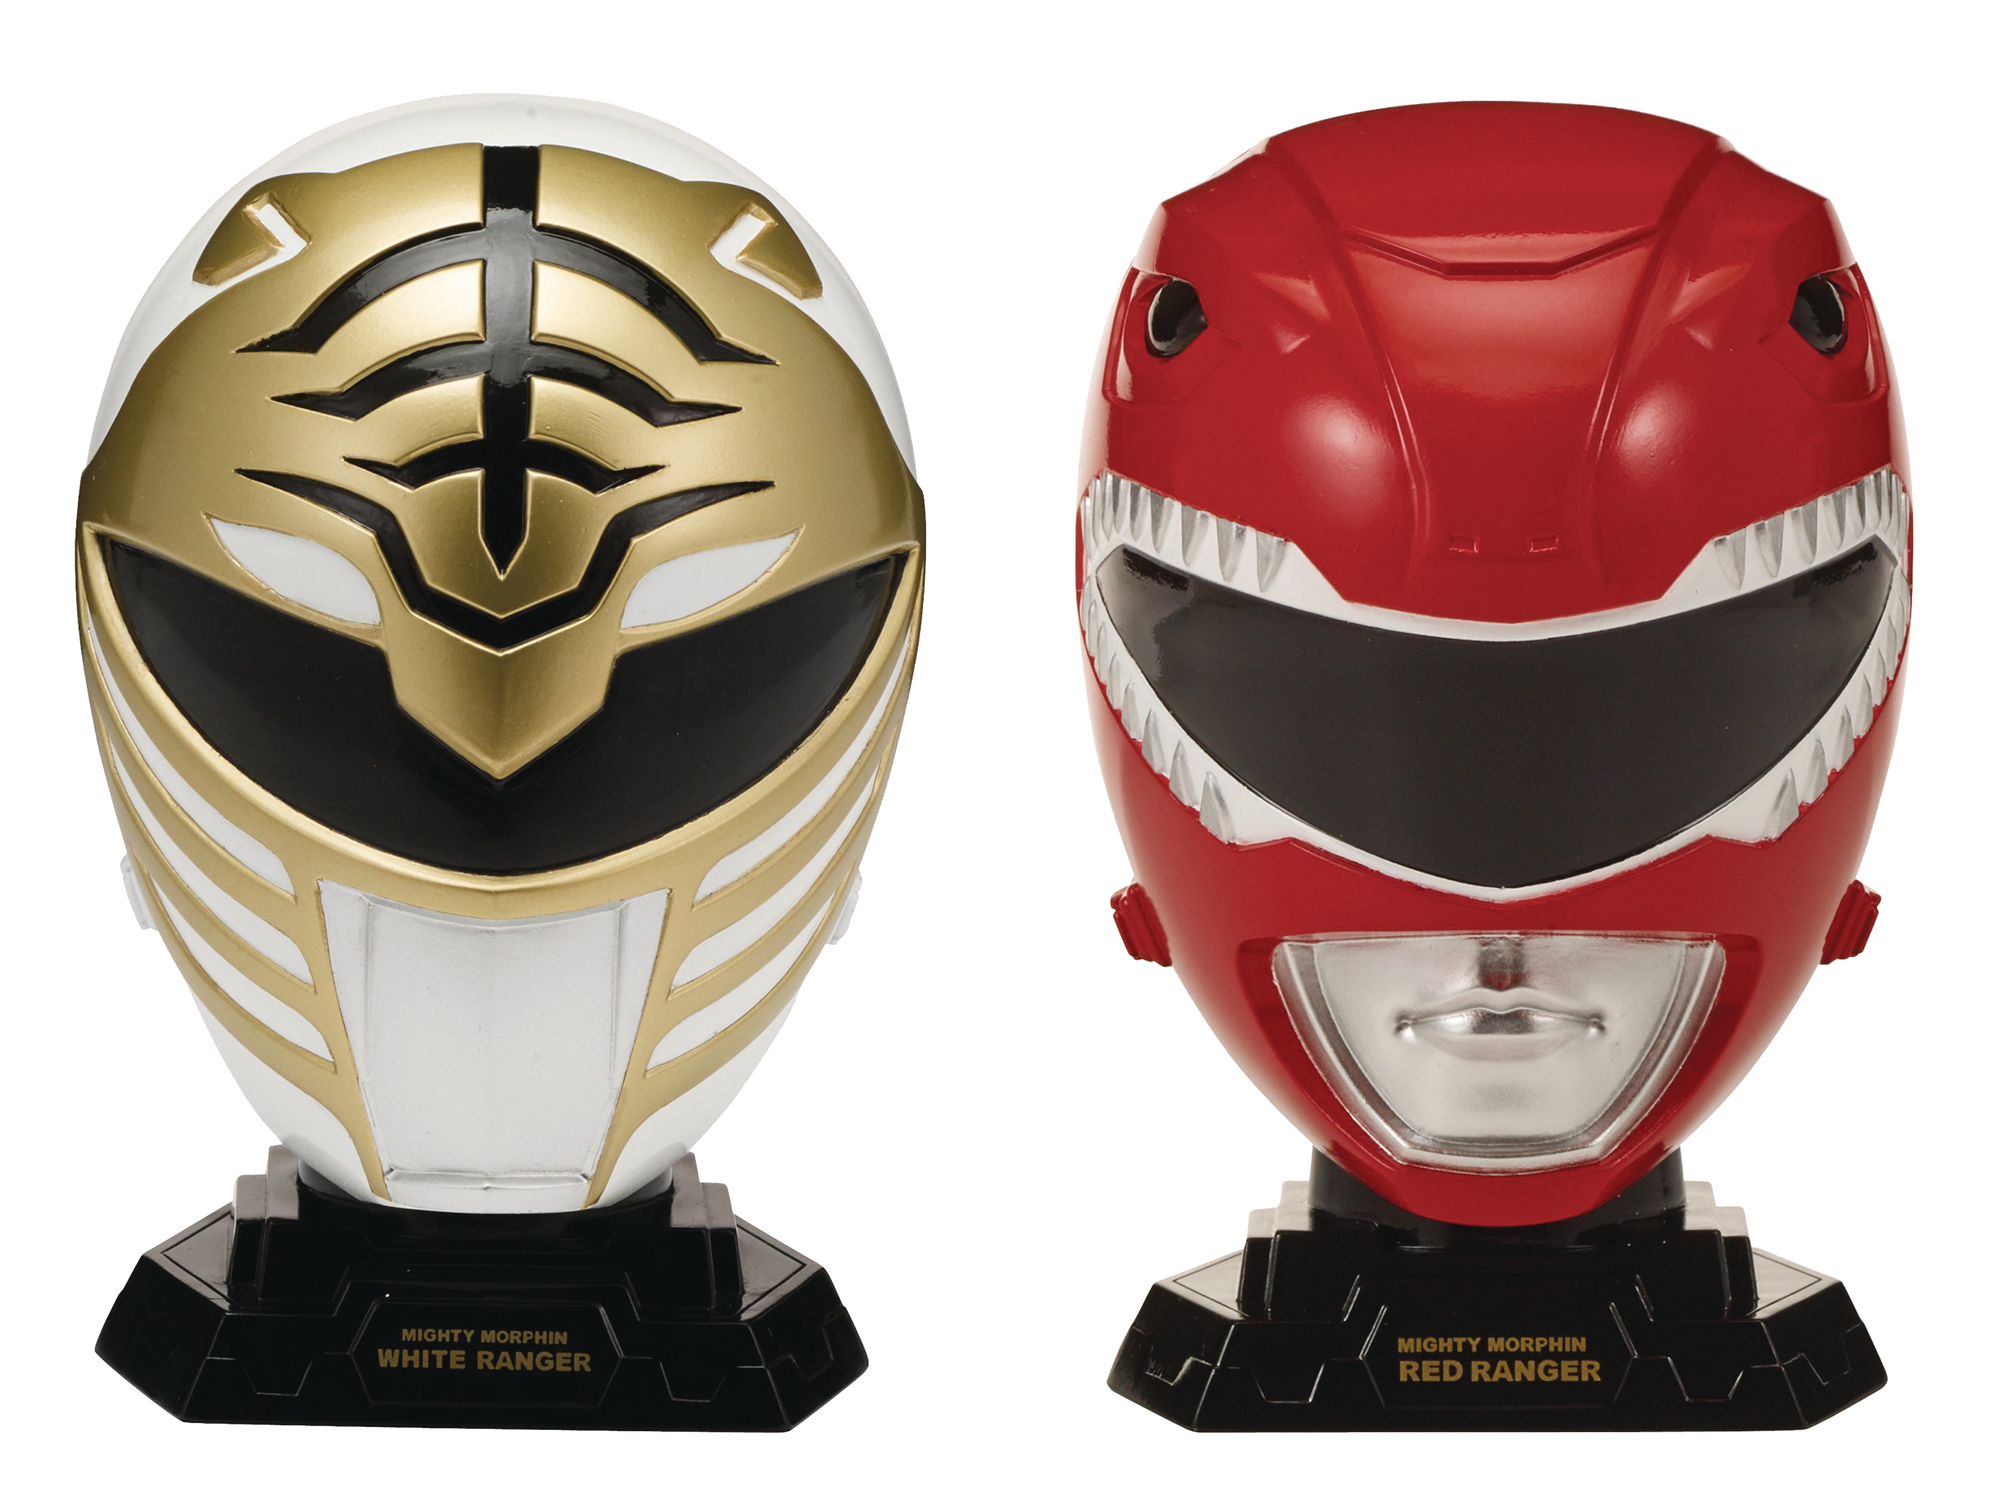 Mighty Morphin Power Rangers Legacy Helmet Collection - Red and White Power Rangers